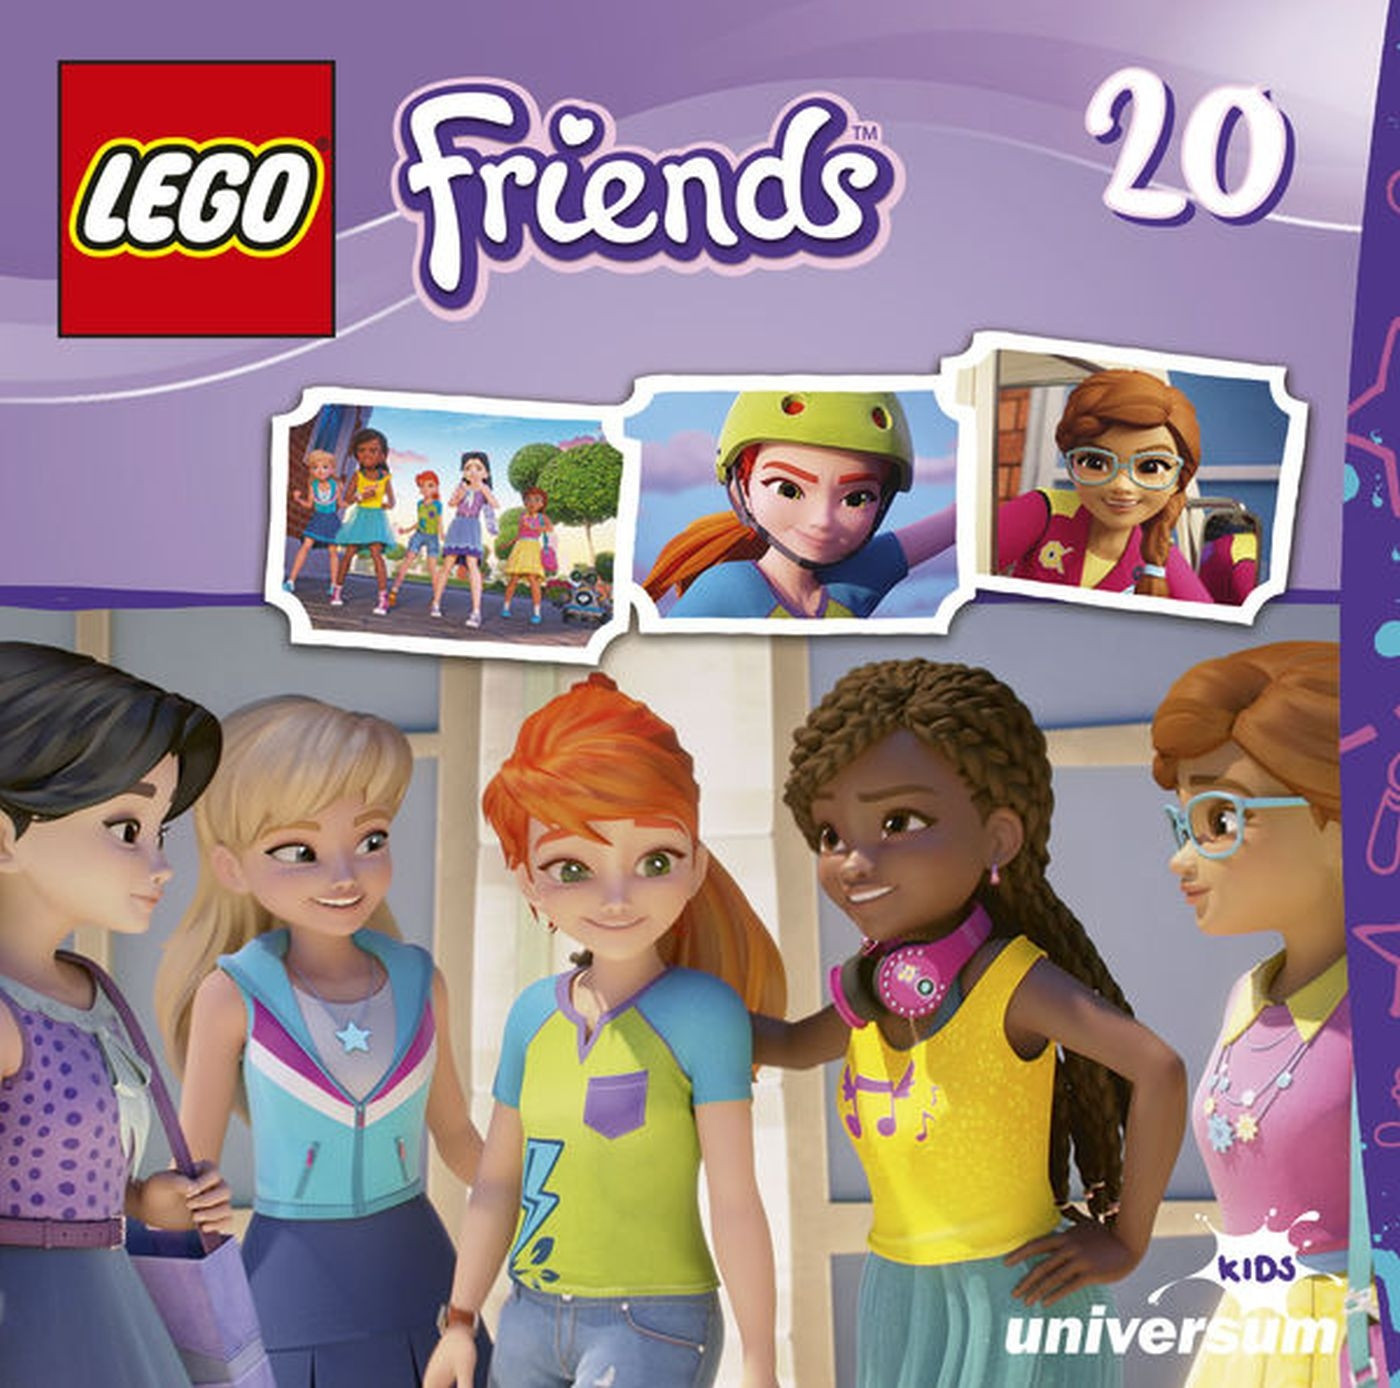 LEGO Friends (CD 20)